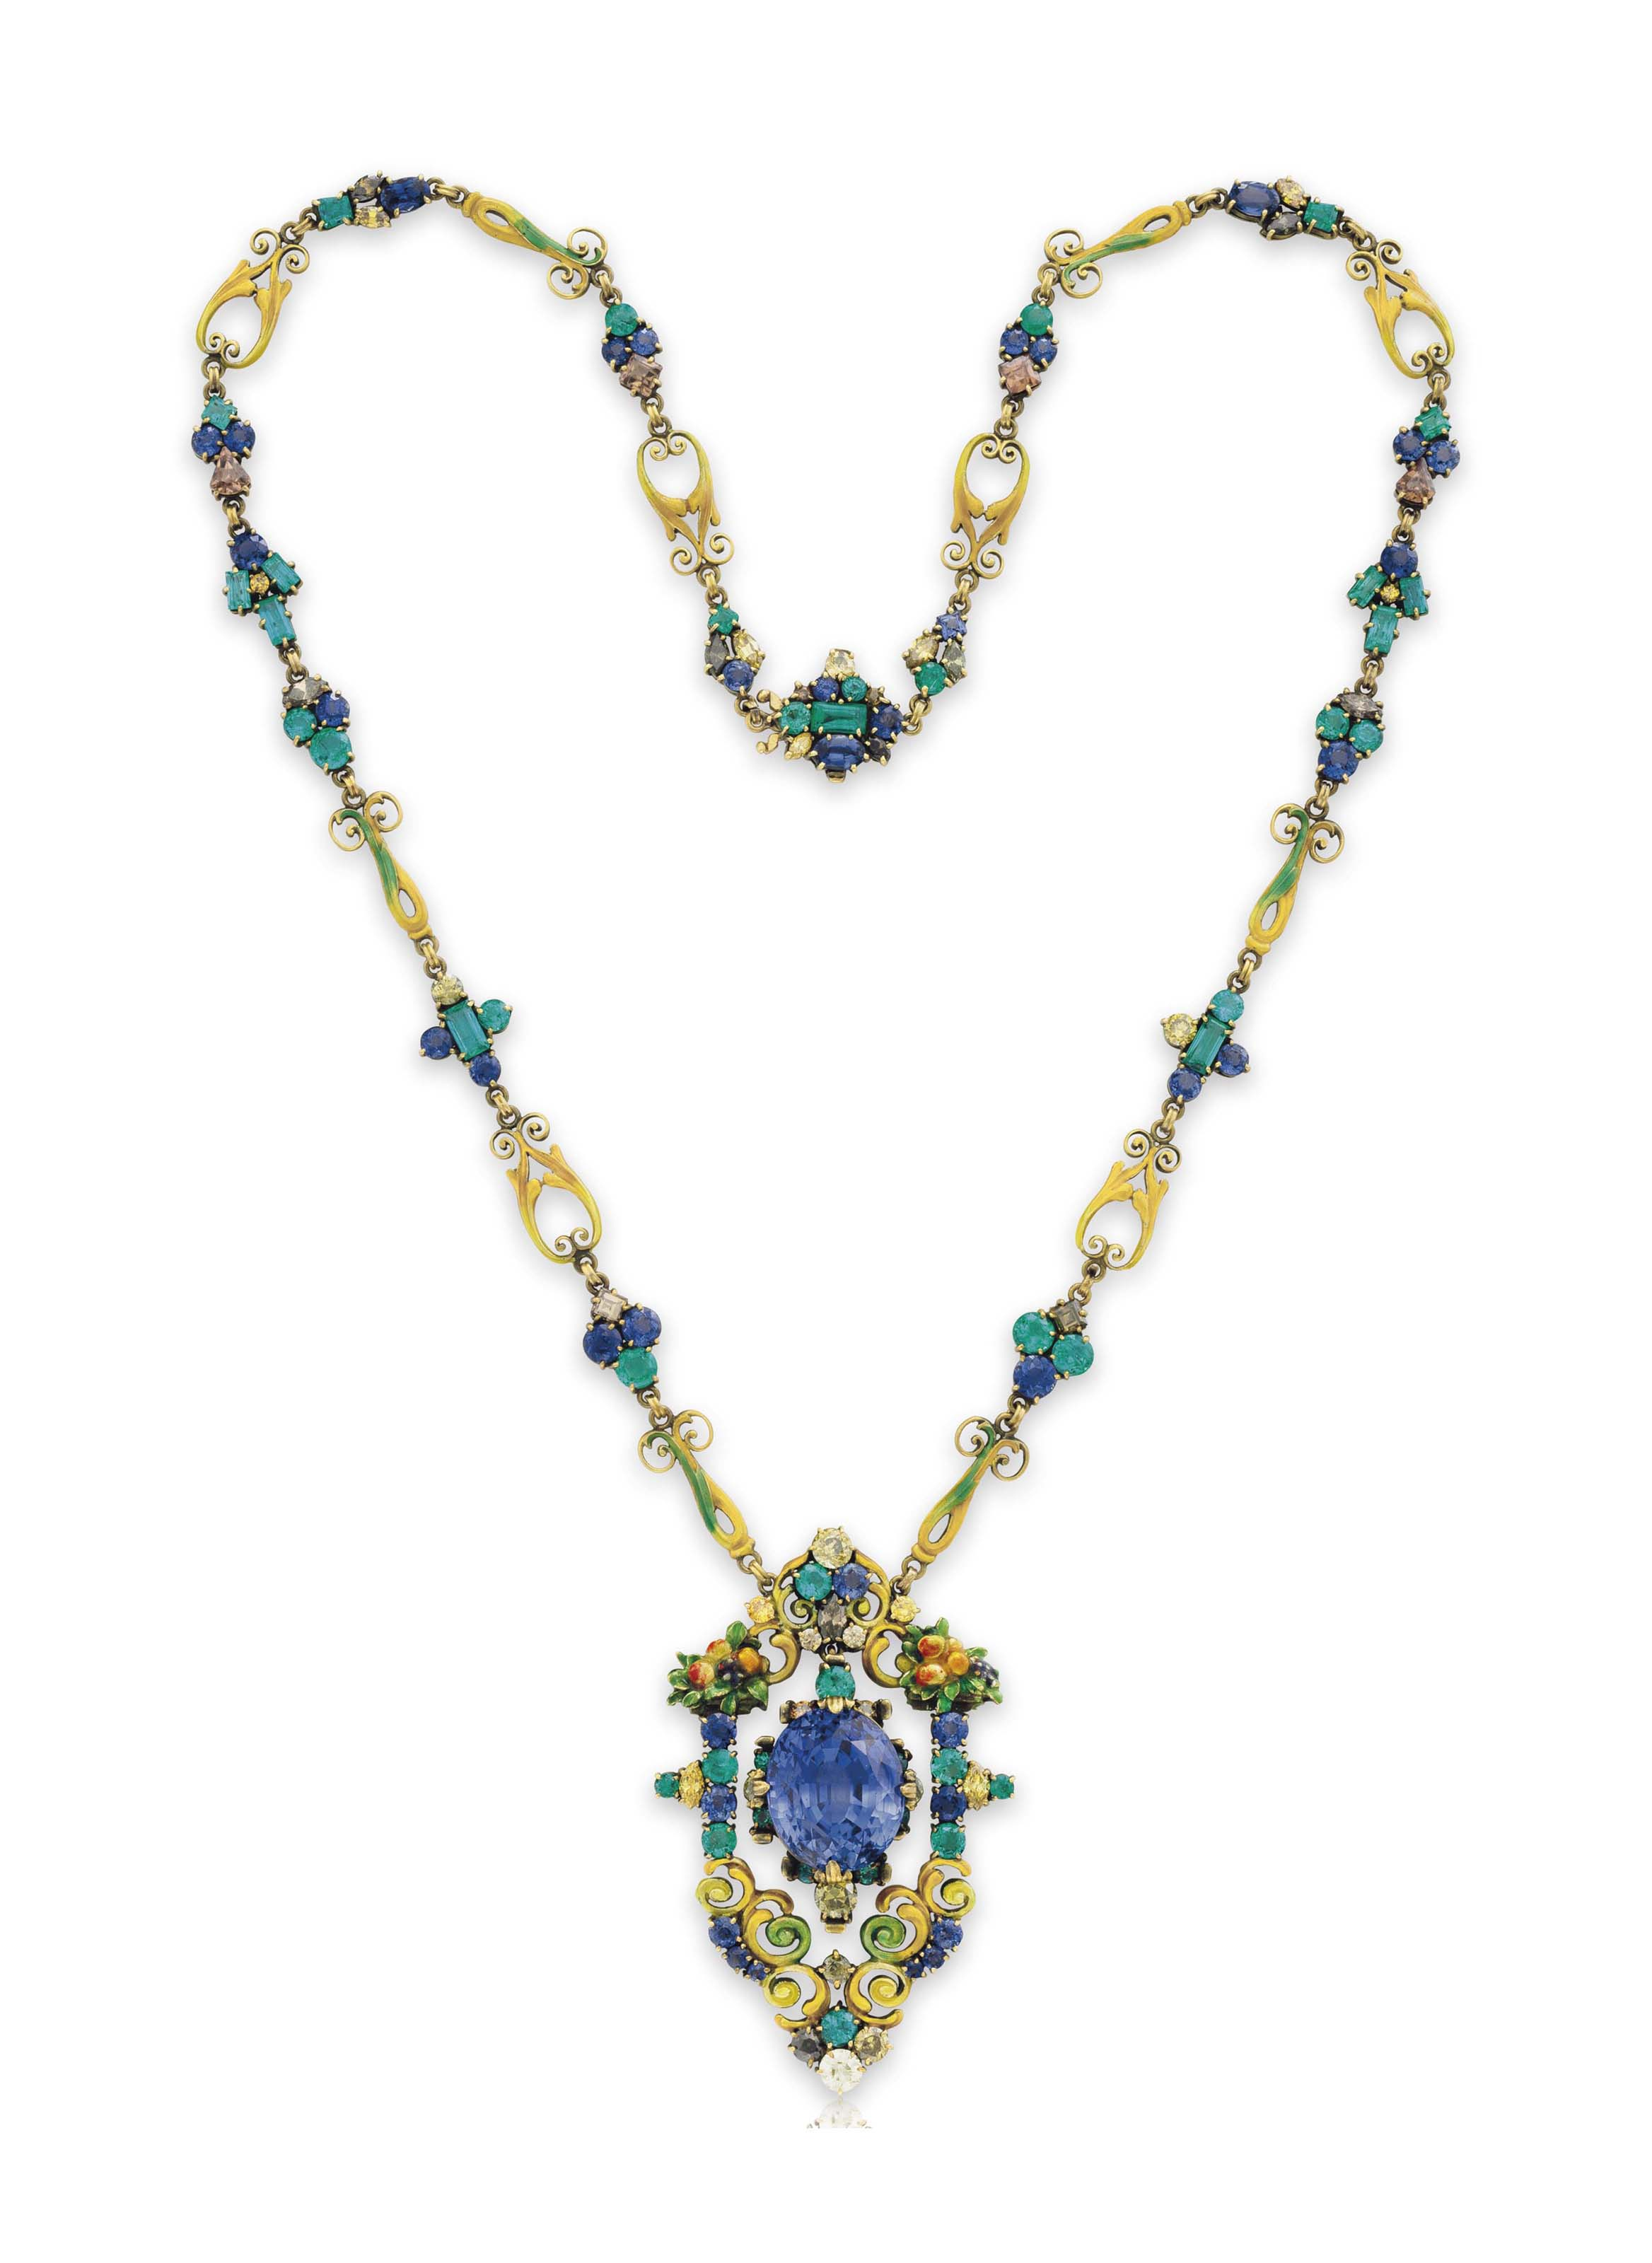 A MULTI-GEM PENDANT NECKLACE, BY LOUIS COMFORT TIFFANY, TIFFANY & CO.